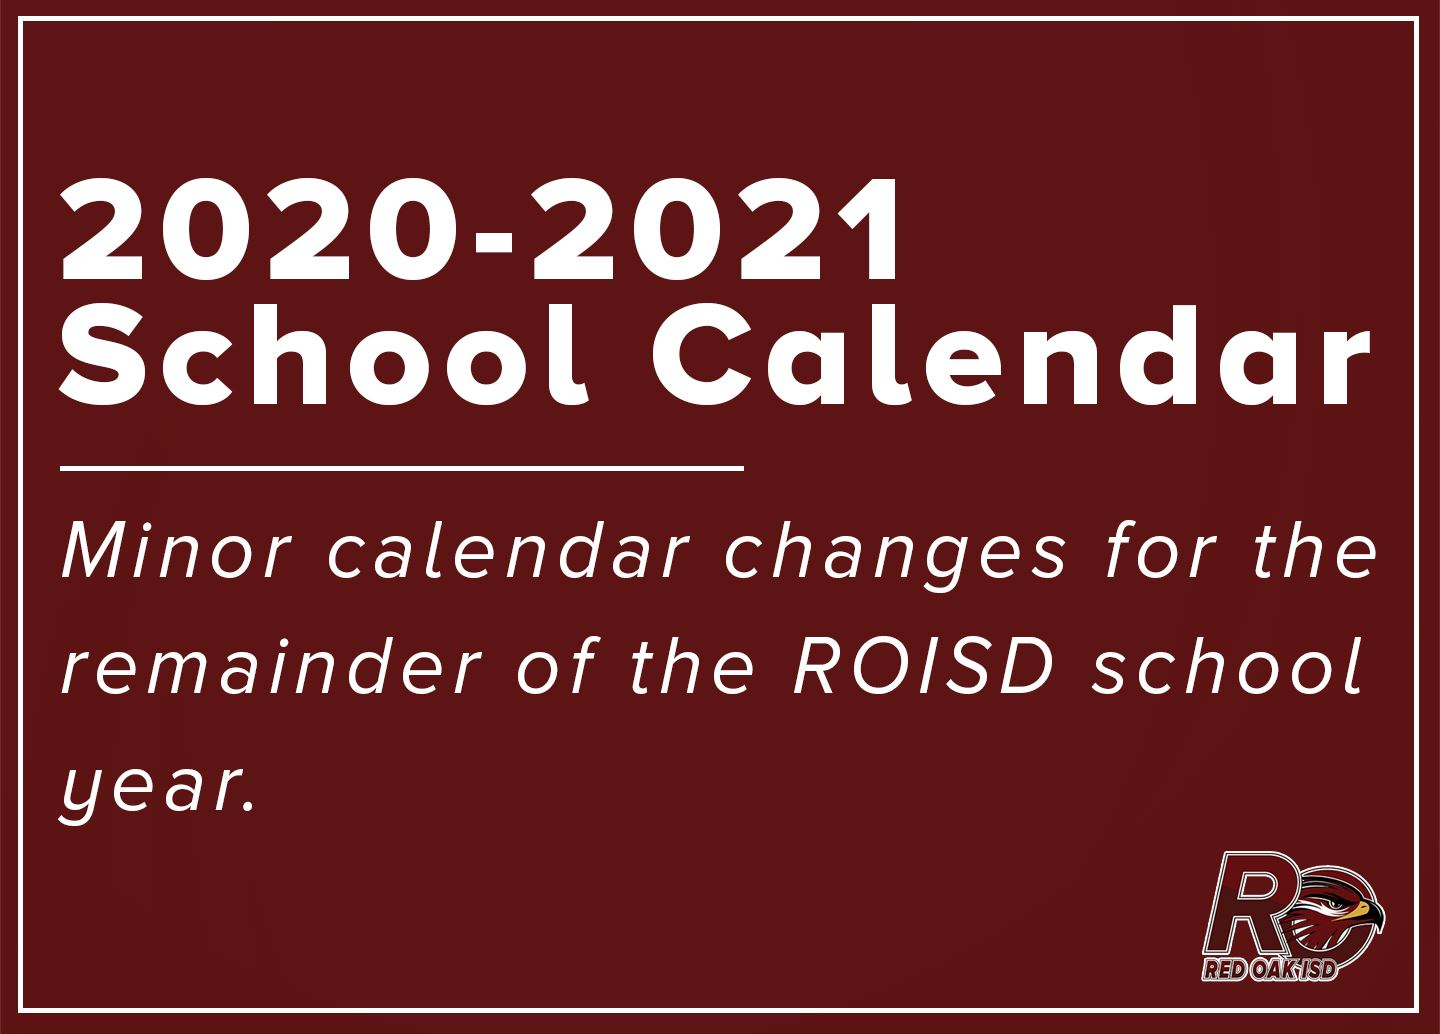 2020-2021 School Calendar: Minor calendar changes for the remainder of the ROISD school year